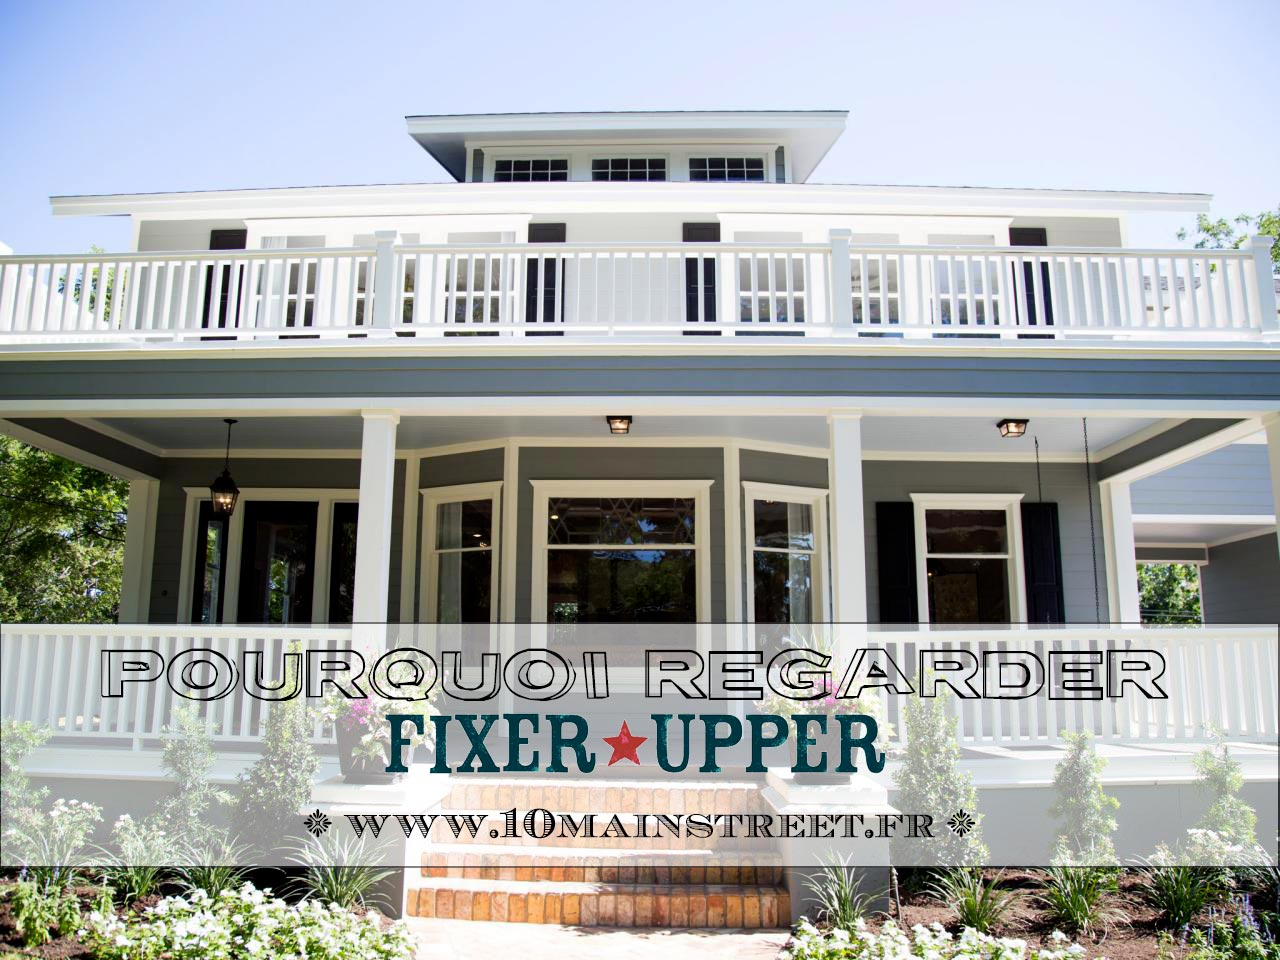 Pourquoi regarder fixer upper total renovation sur tfx - Total renovation ma maison sur mesure ...